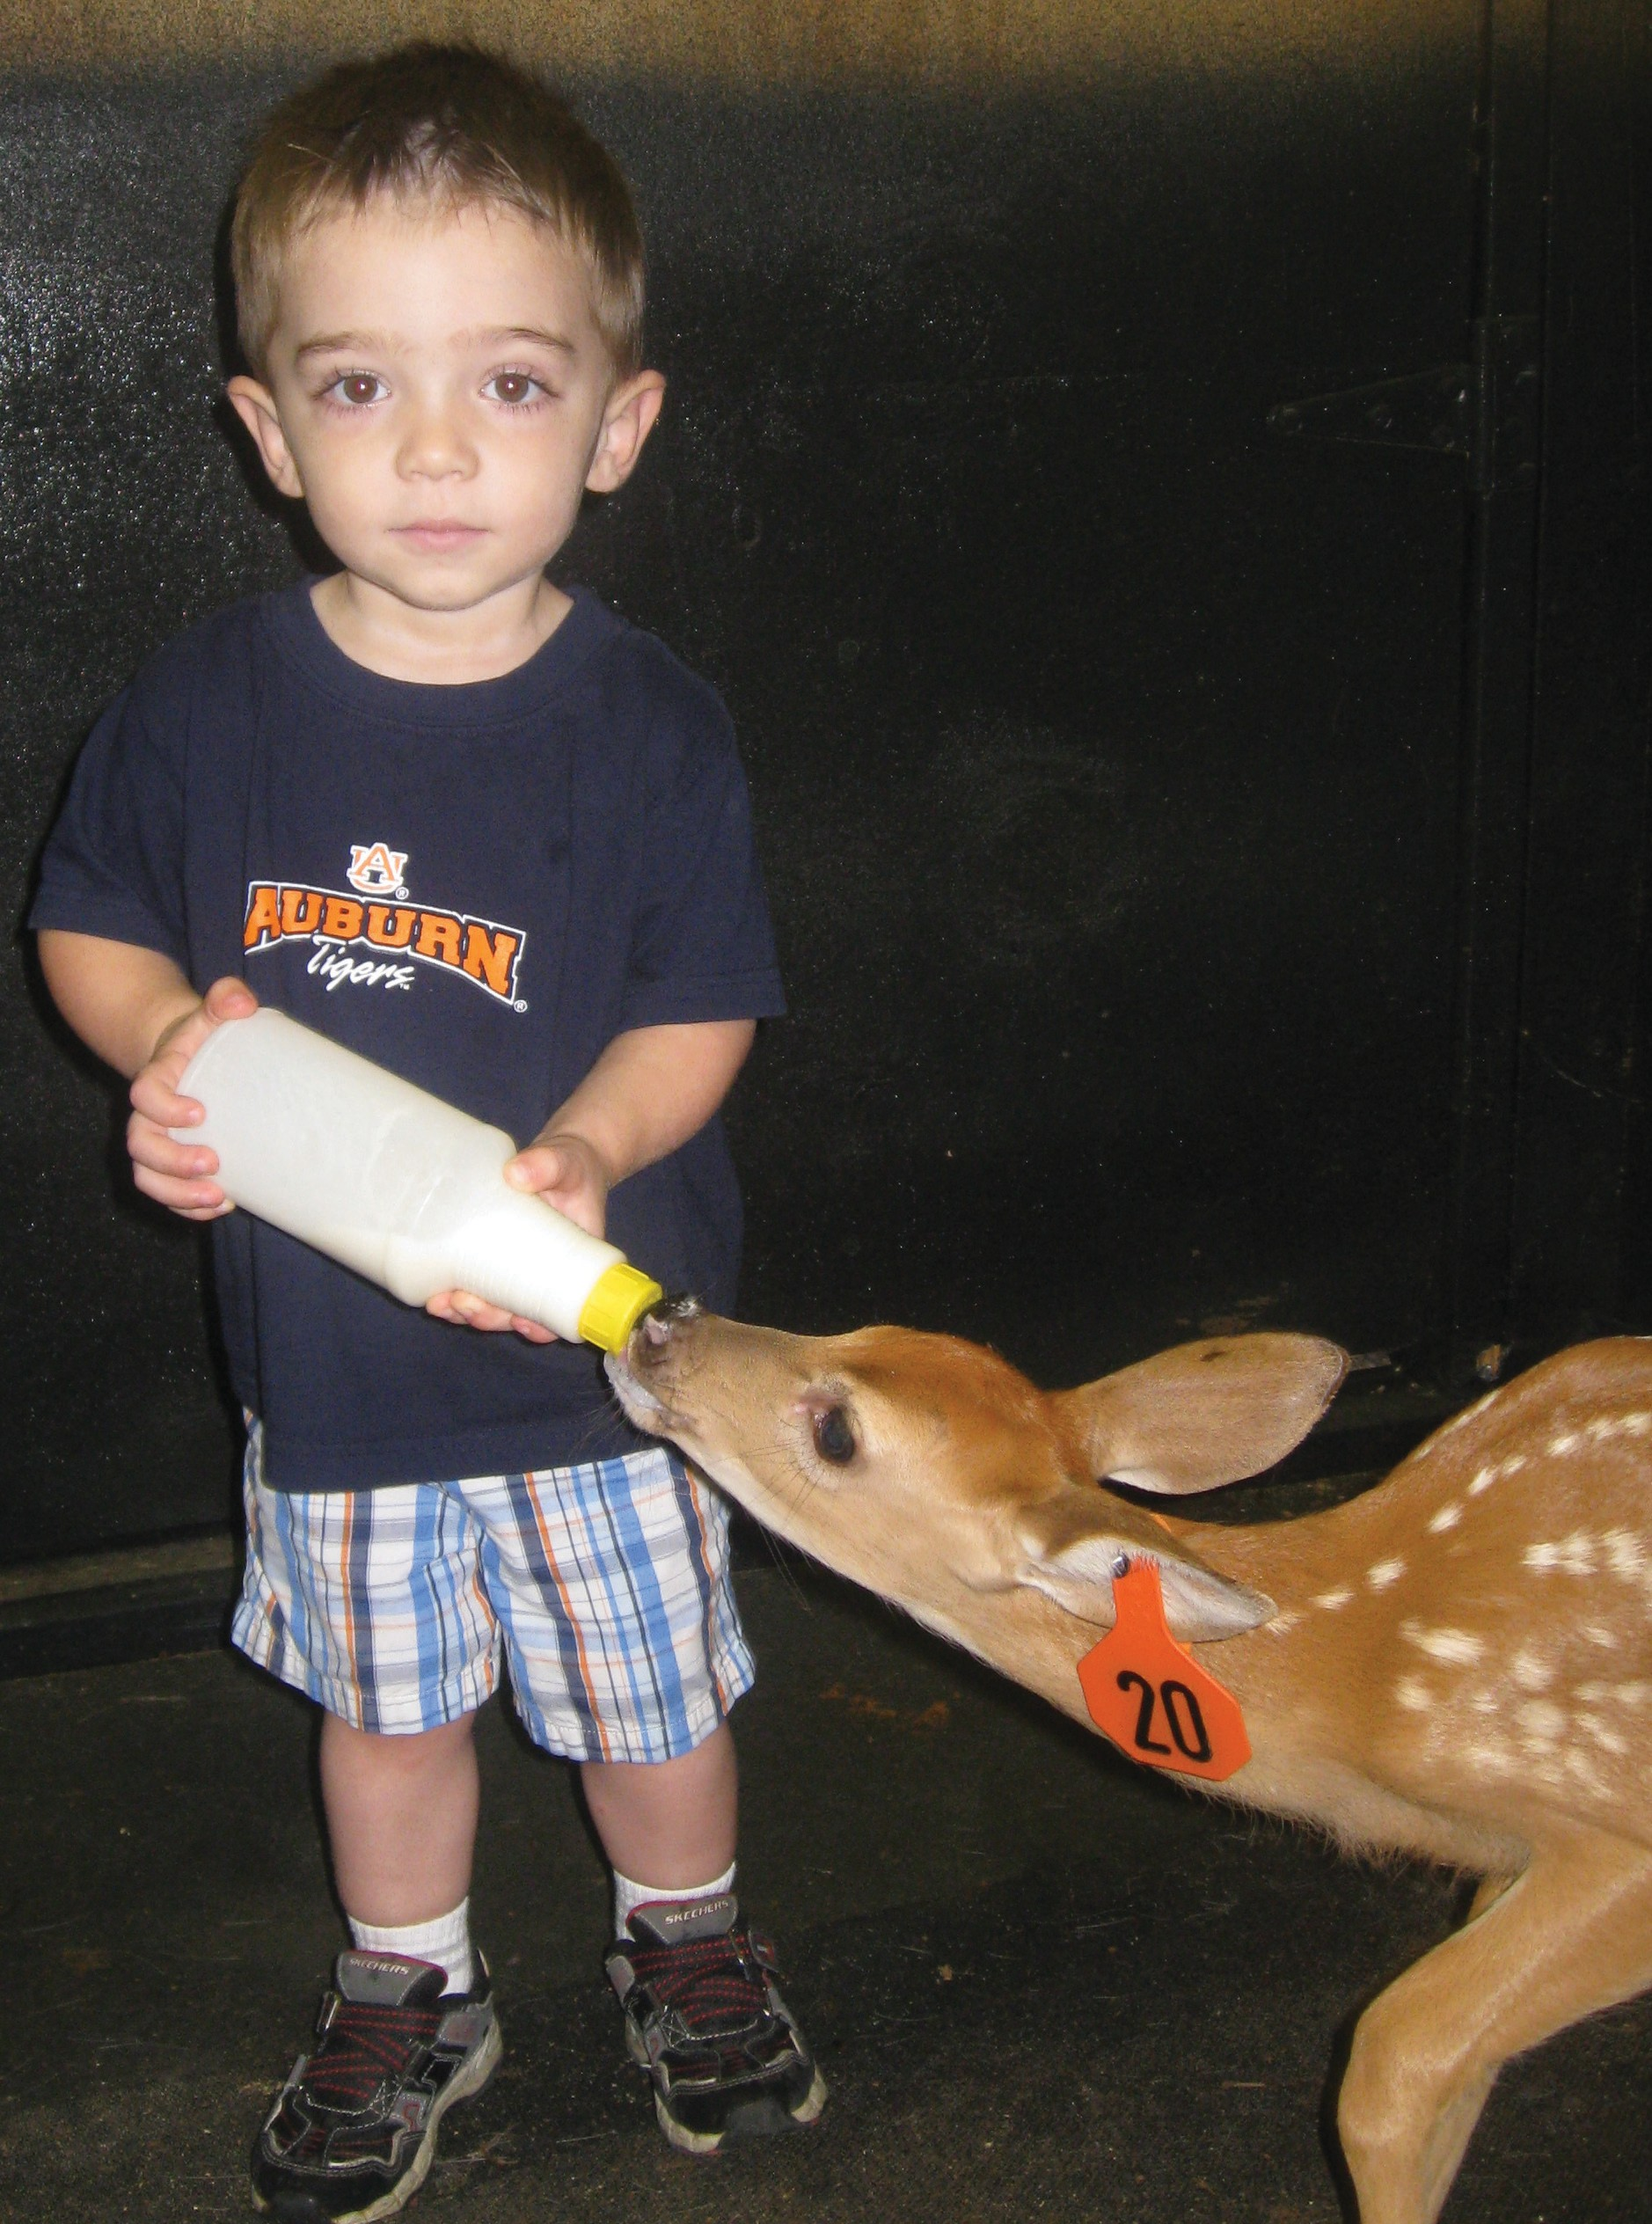 "Feeding his favorite ""baby deer,"" that he calls Aubie (or sometimes Aubie Tiger), is a job Joshua takes seriously... even to wearing his favorite Auburn T-shirt to match his baby deer's name. A busy, bright, lovable 2-year-old, Joshua talks continually about Aubie and hugs and kisses her at every opportunity. His mom and dad, Jenna and Brian Wood, point out that the little deer is not one of their herd but belongs to a friend whose barn was blown away in the April 27 storms. It'll be tough when she's weaned and Joshua learns he can't feed her anymore. Good thing he has many loving people around to console him. – Jane Hill"